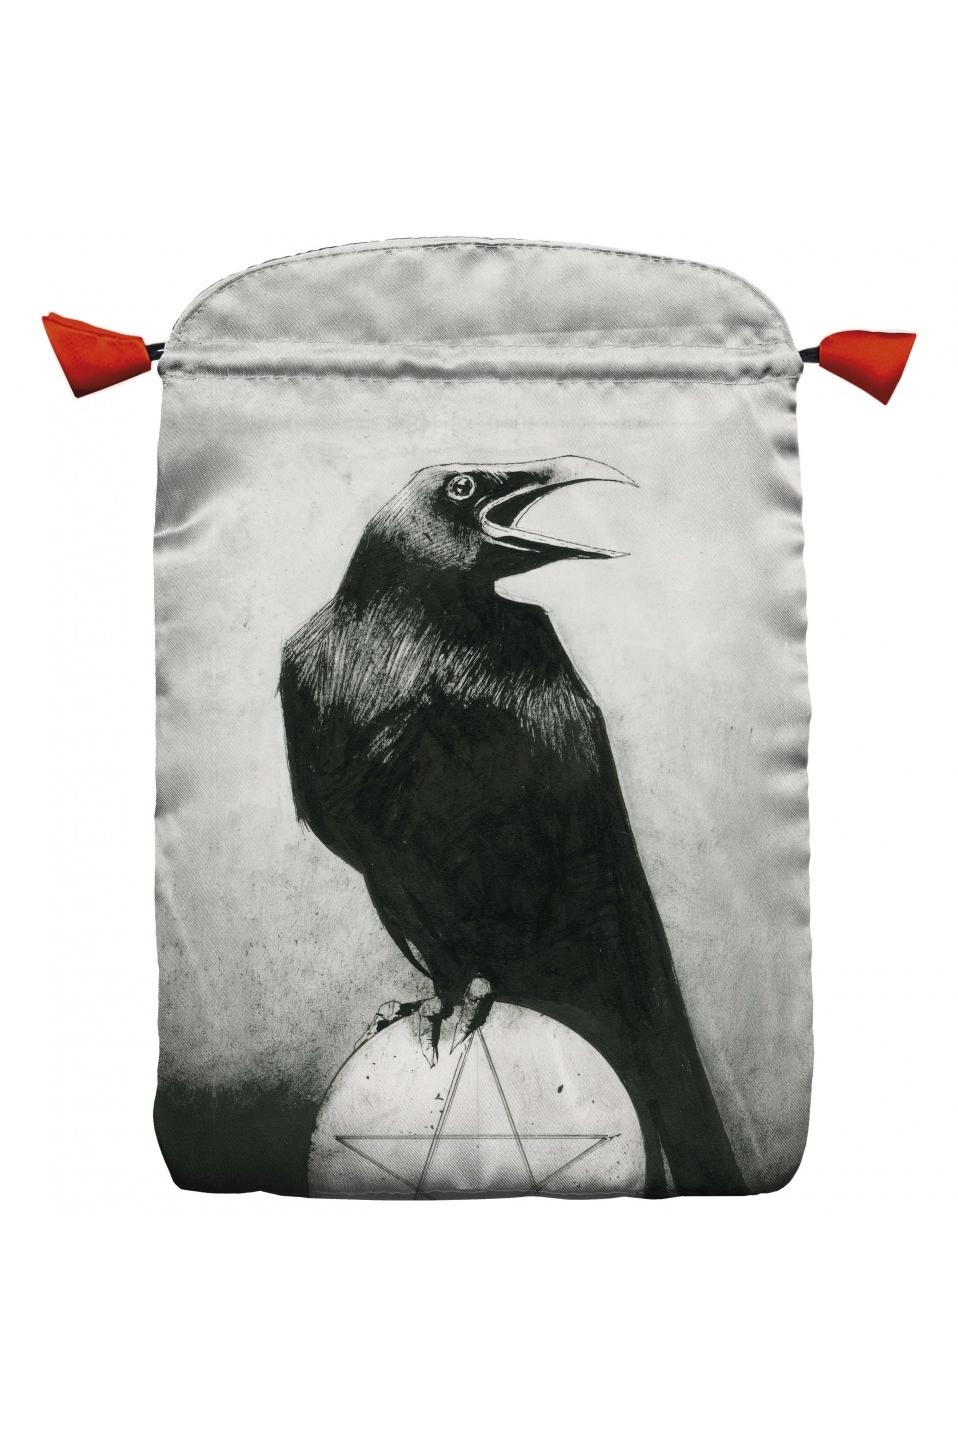 Tarotbuidel Crows